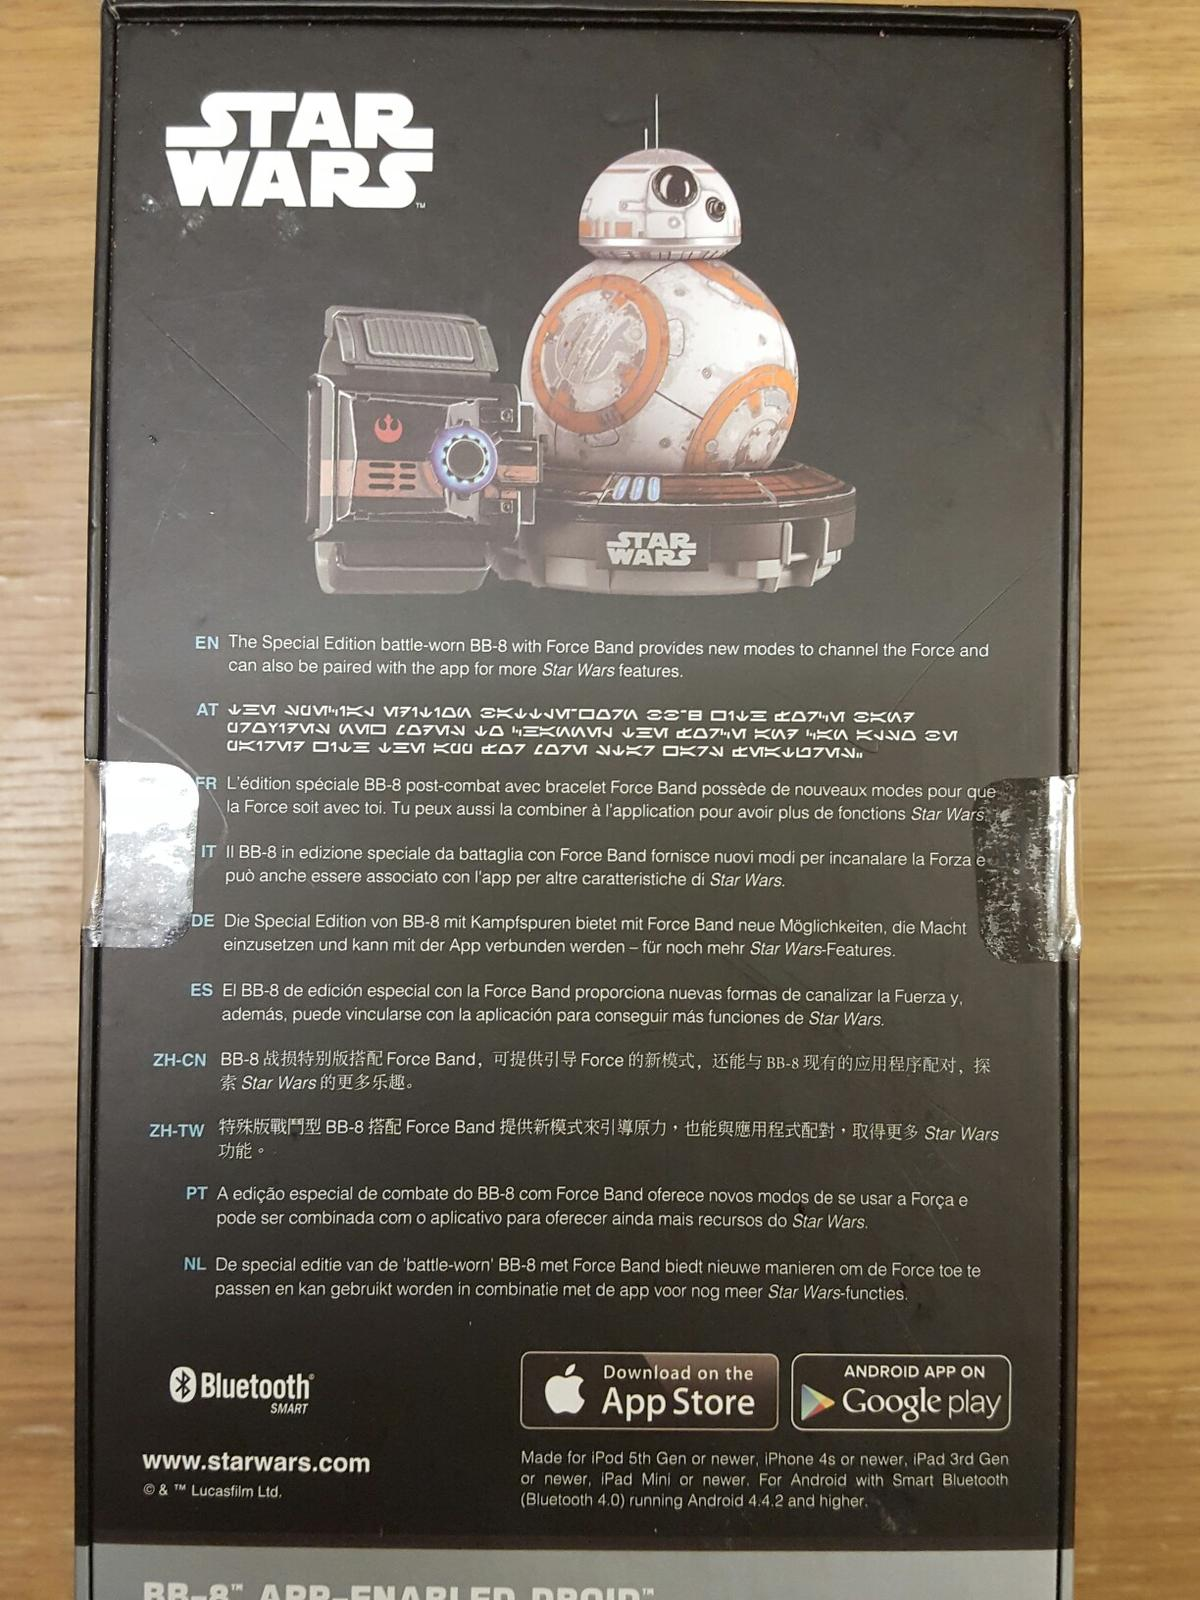 BB8 app enabled droid & force band sp edn in KT14 Byfleet for